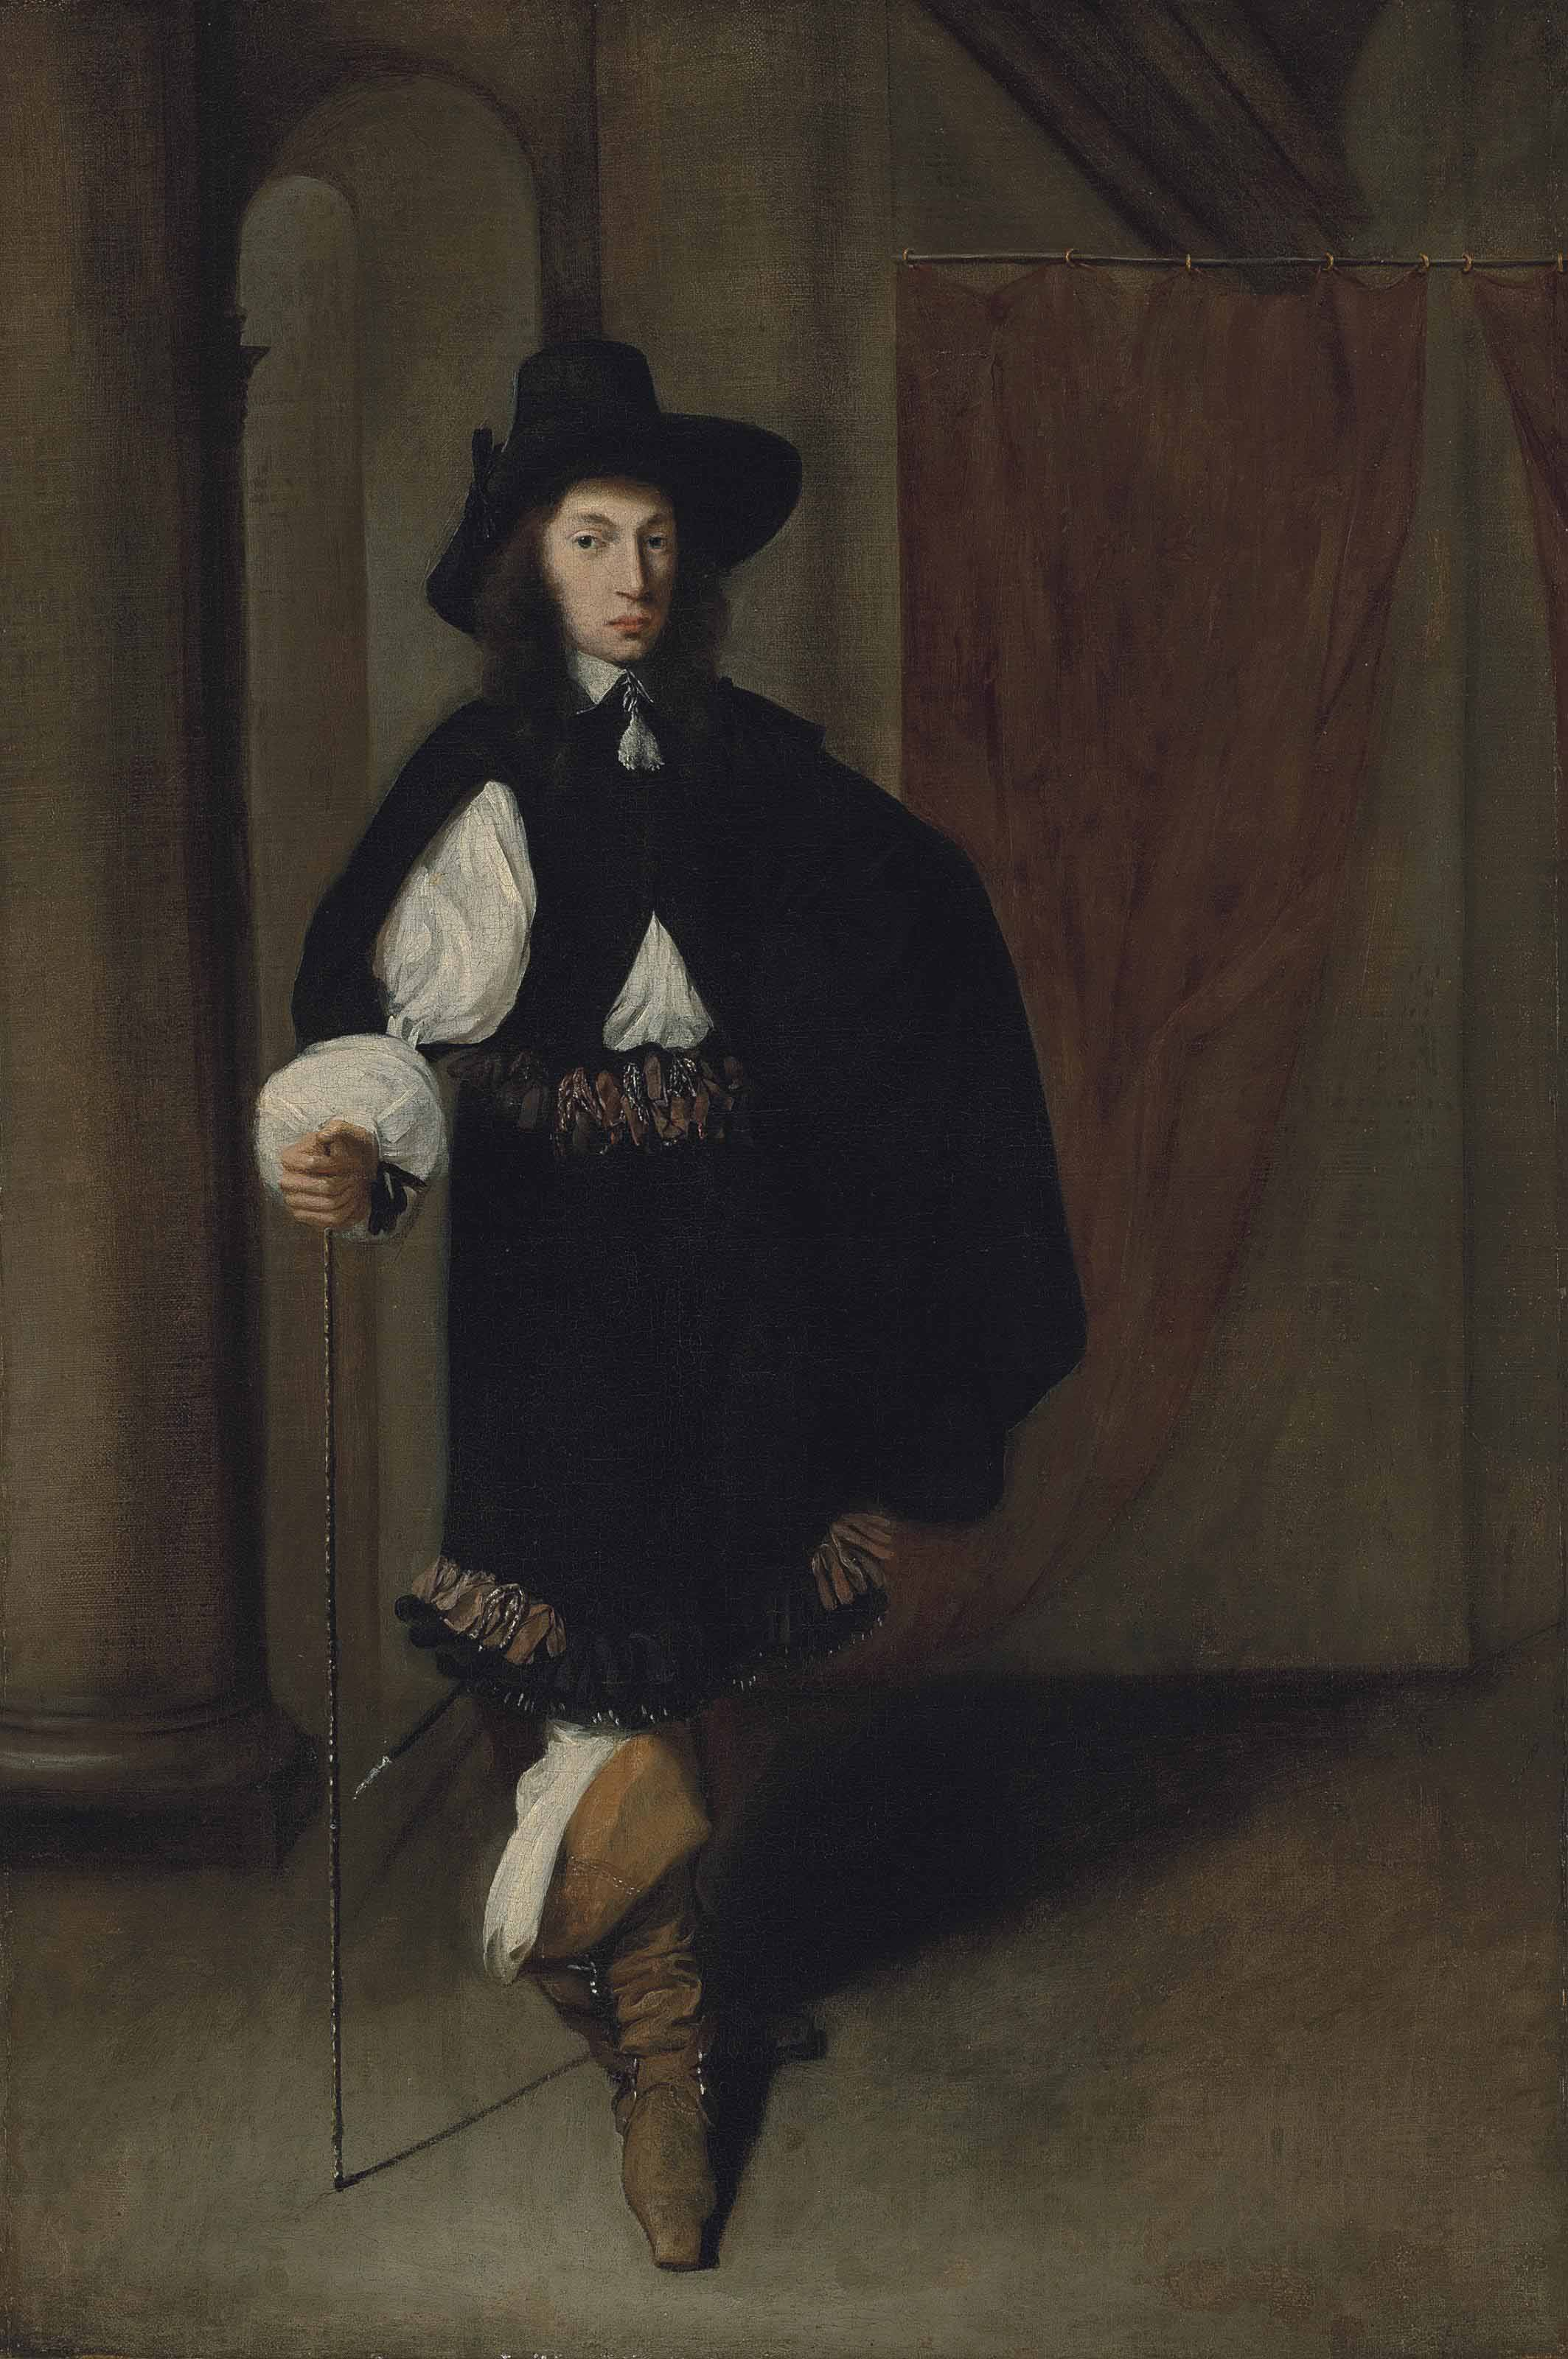 Portrait of a gentleman, full-length, in a black coat and hat holding a cane in his right hand, in a draped, colonnaded interior